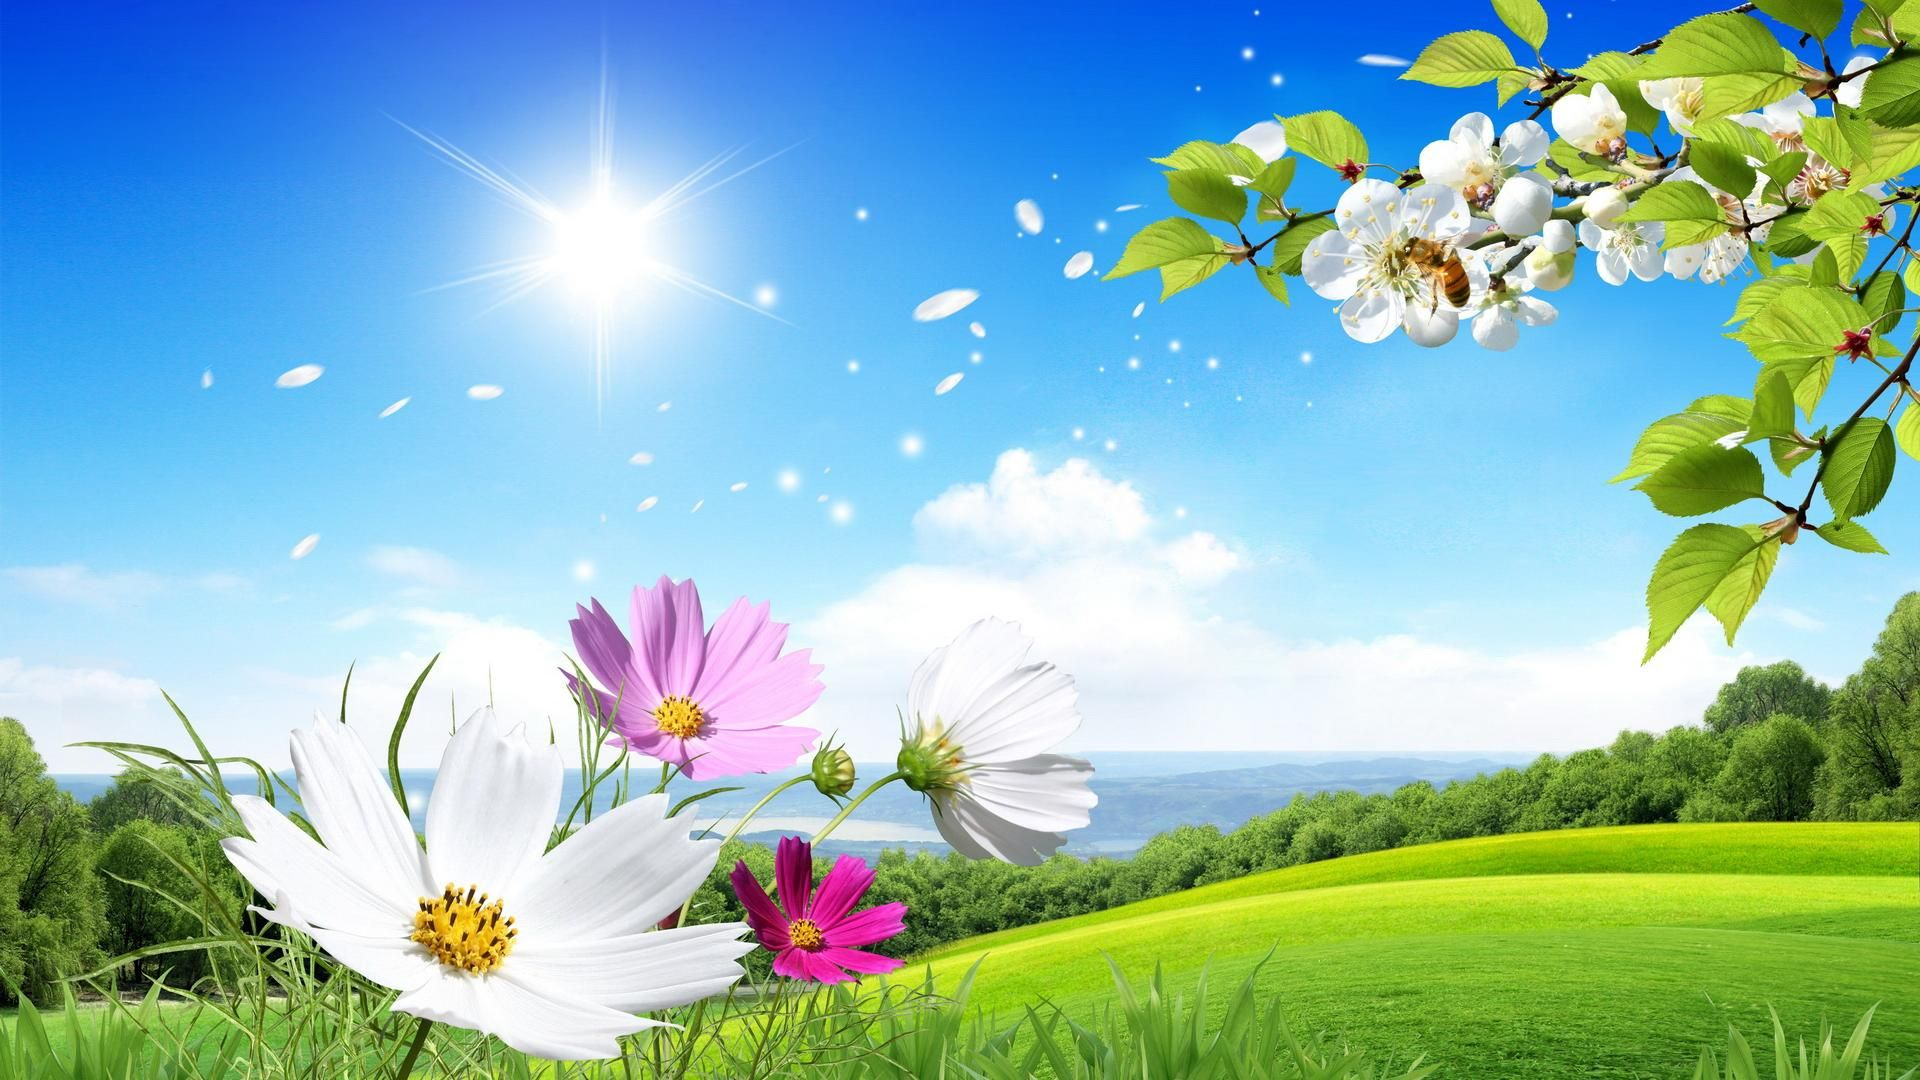 Summer Nature Wallpaper Beautiful Summer Wallpaper Scenery Wallpaper Beautiful Scenery Wallpaper